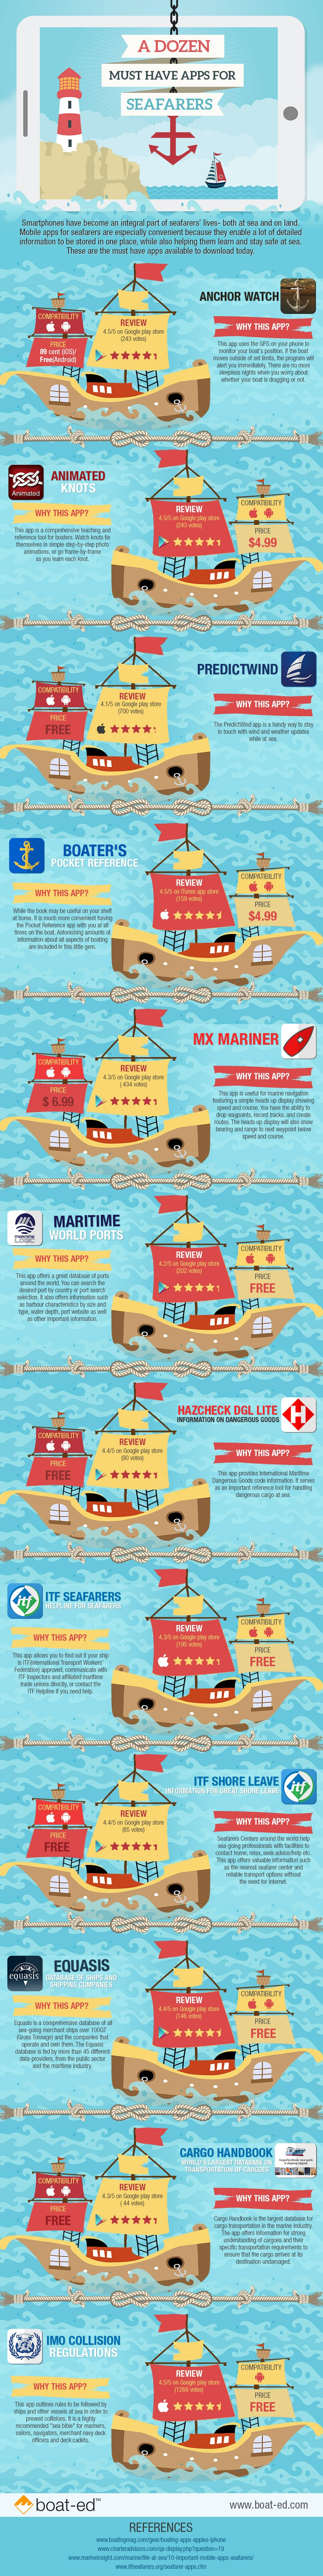 Must Have Apps for Seafarers